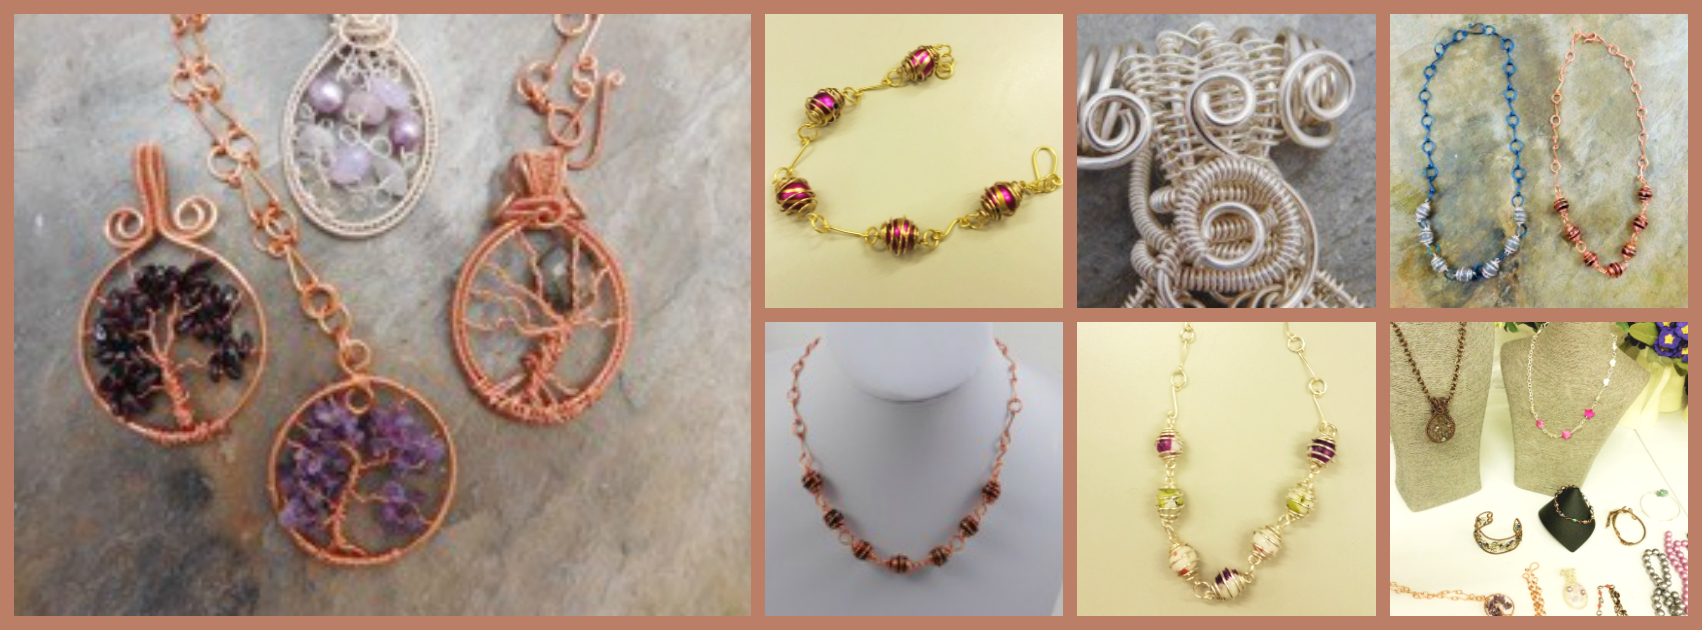 Beginner's Wirework Jewellery Making